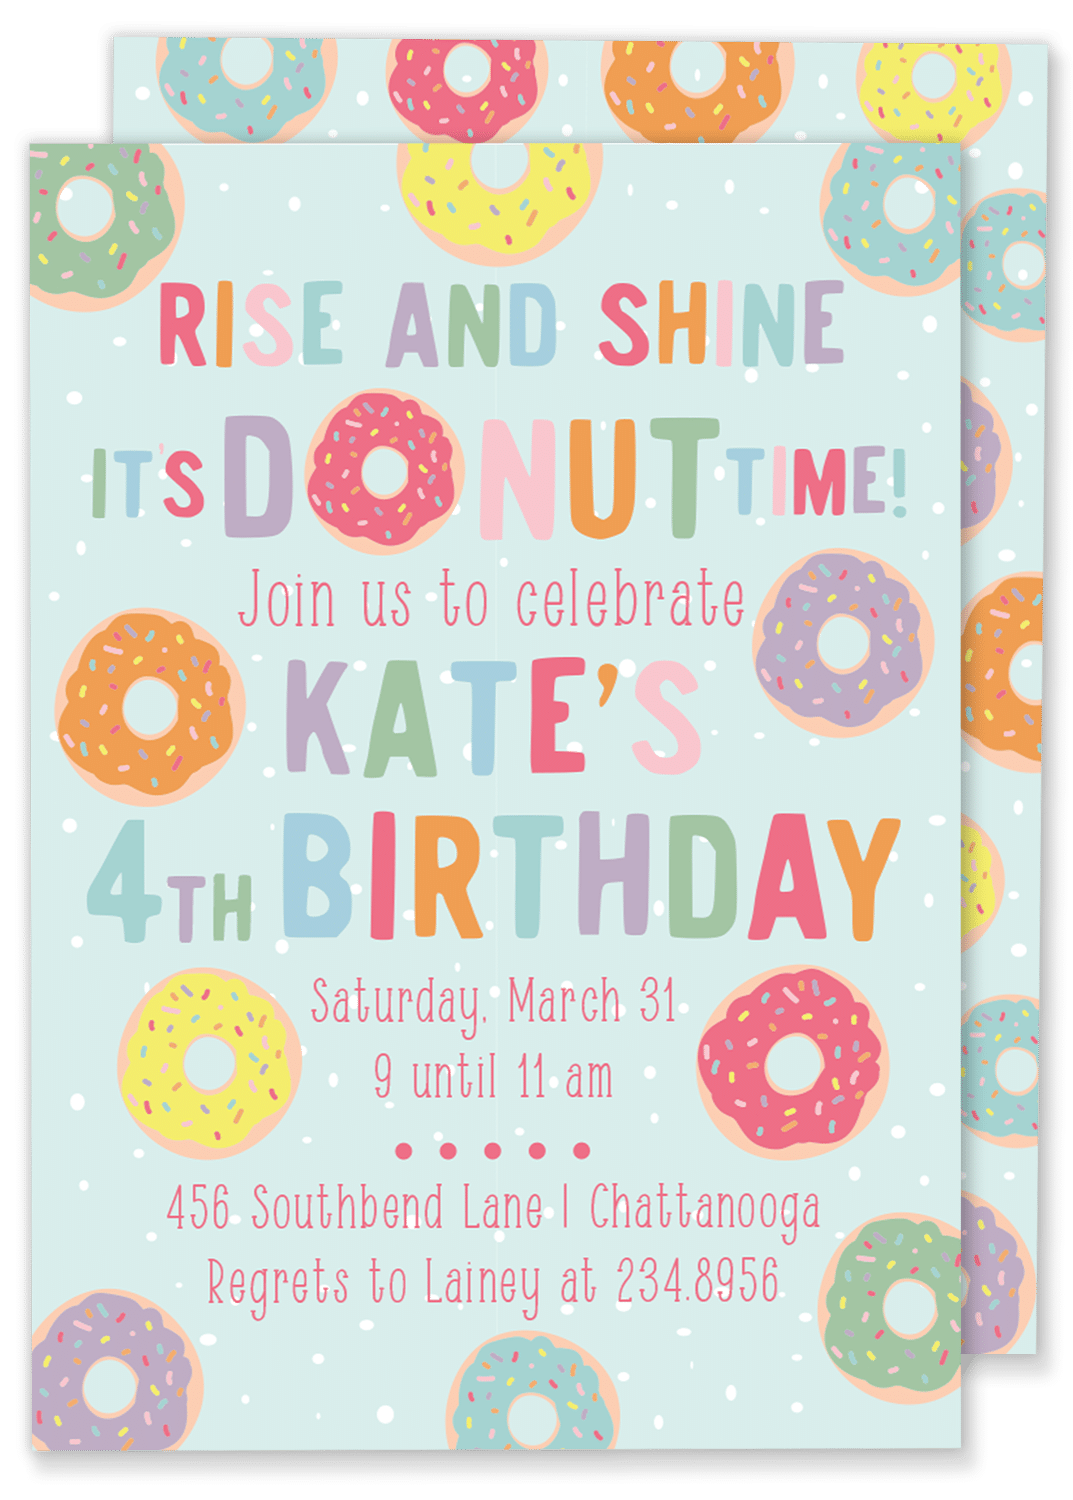 Donut Time Birthday Party Invitation